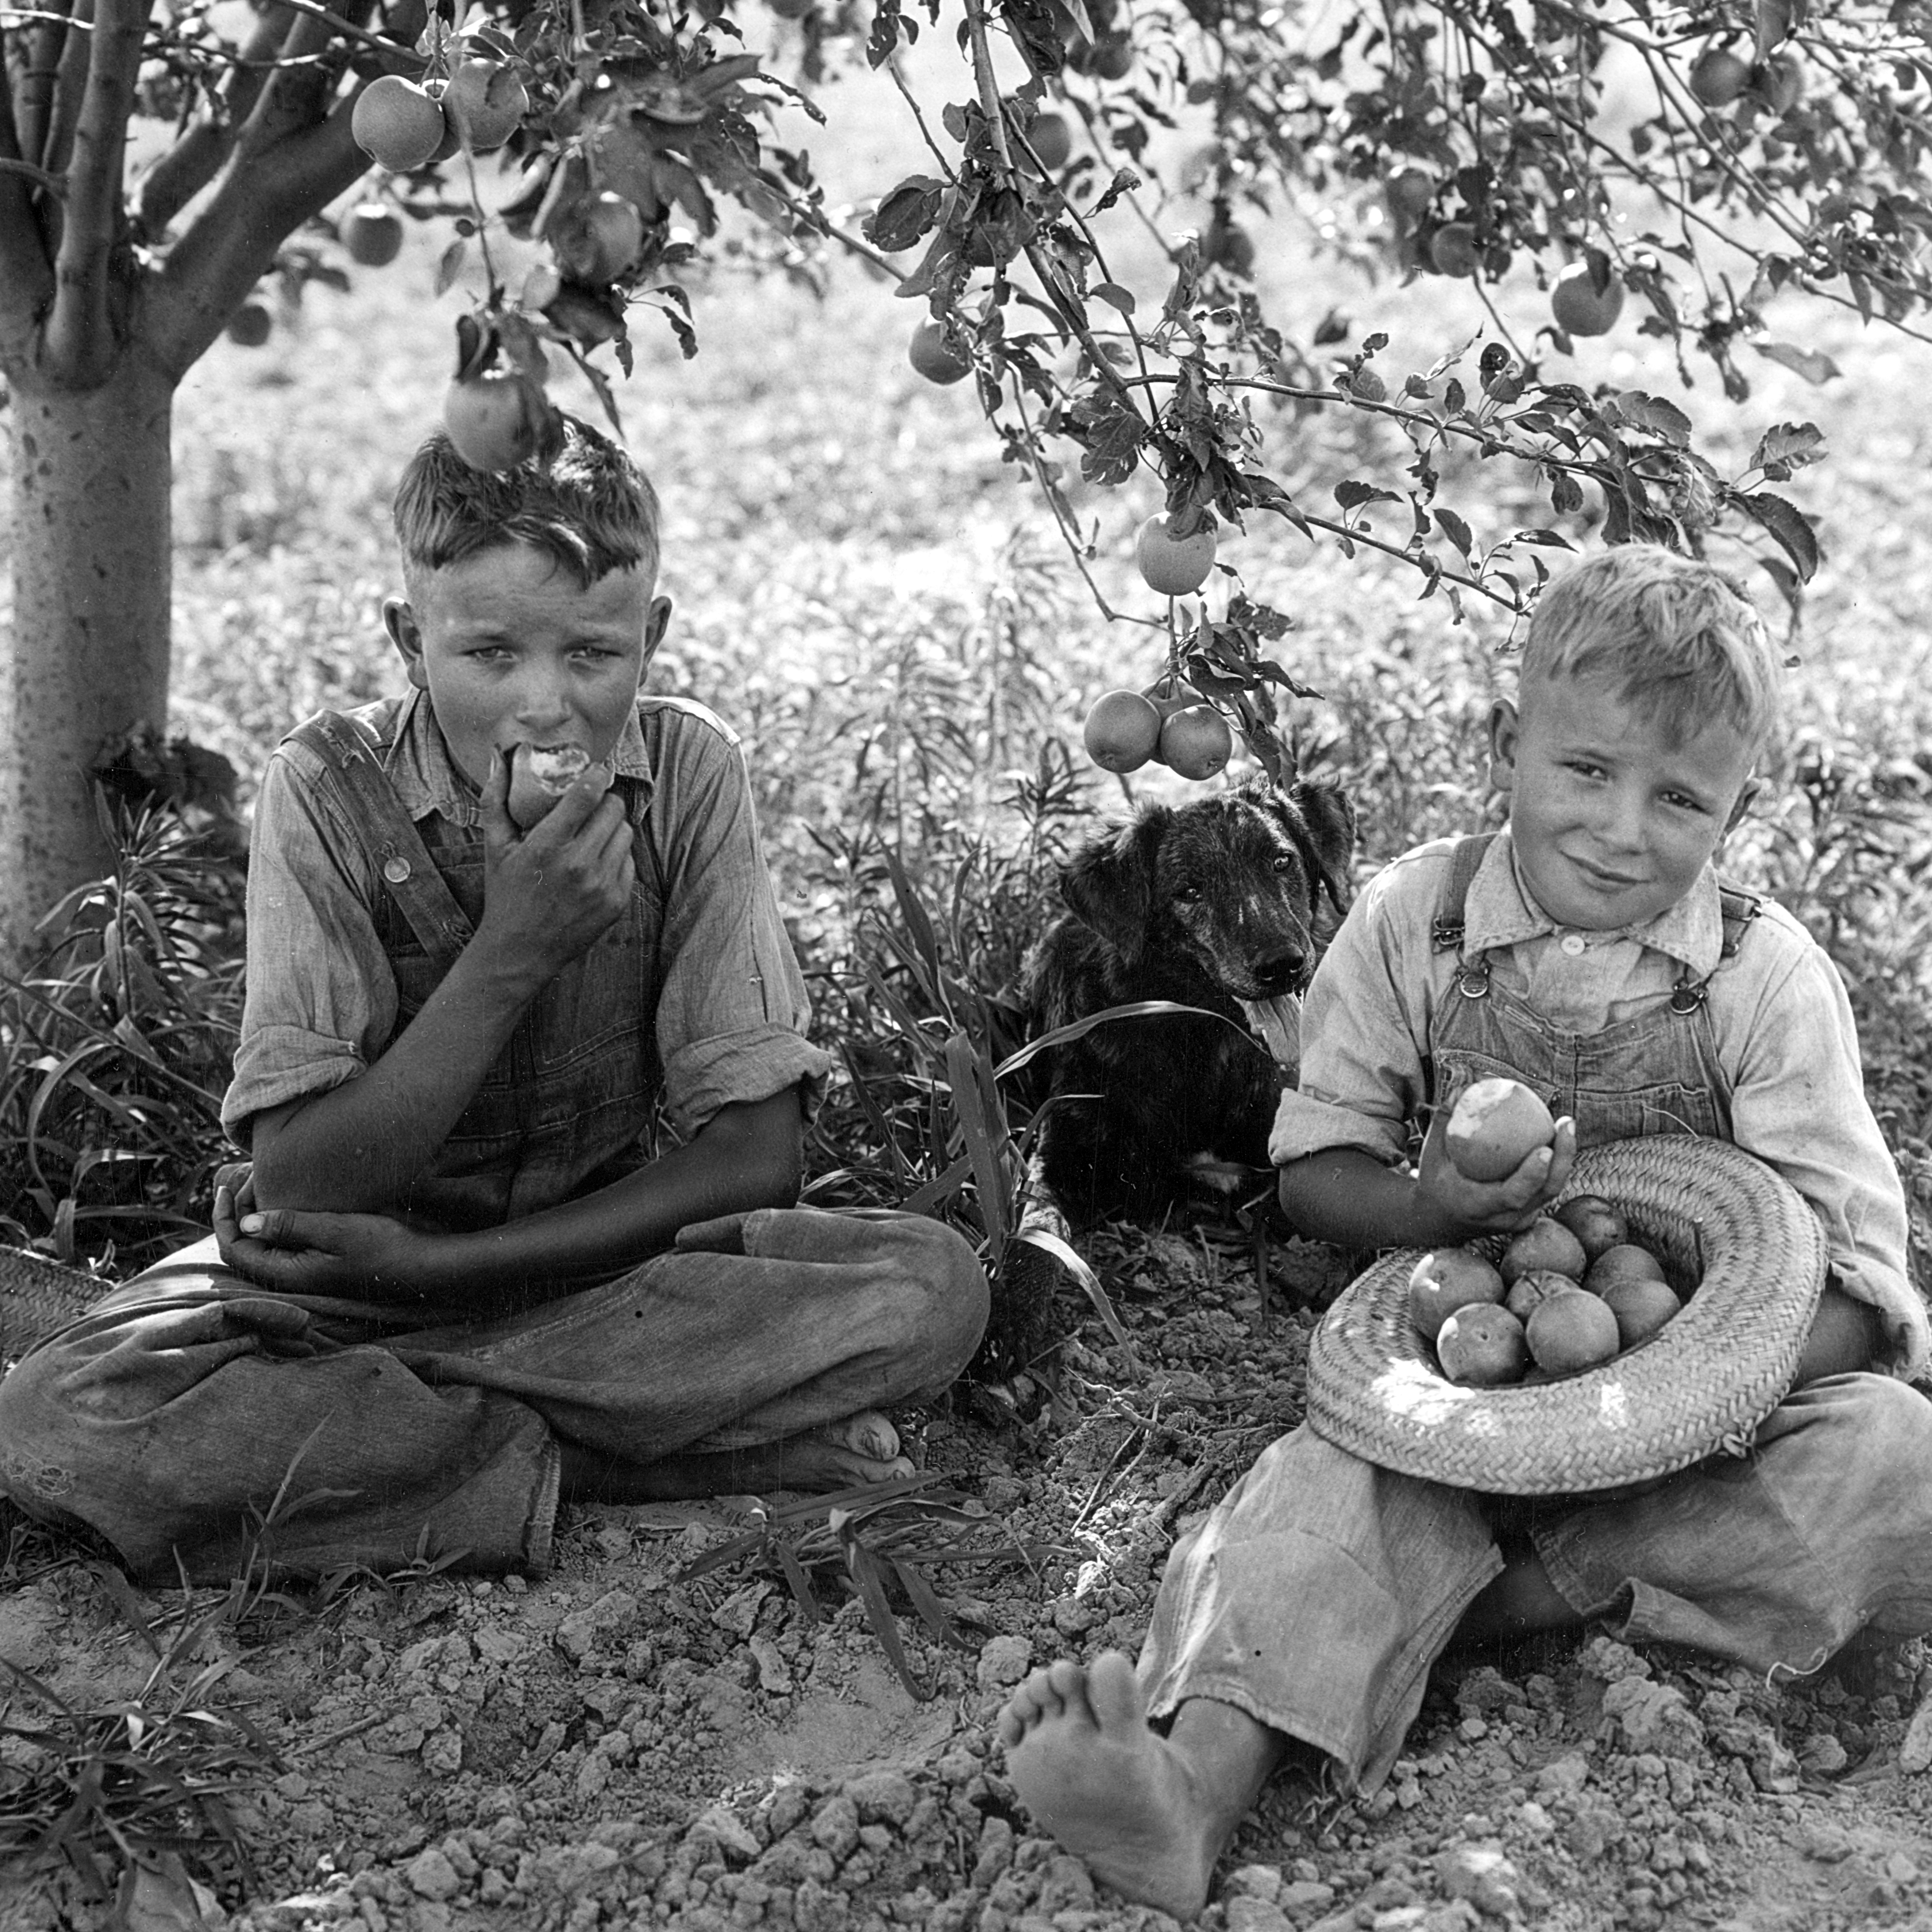 vintage photograph of two young boys sitting under an apple tree. one is holding an apple in his mouth and the other has a straw hat filled with apples with another in his hand